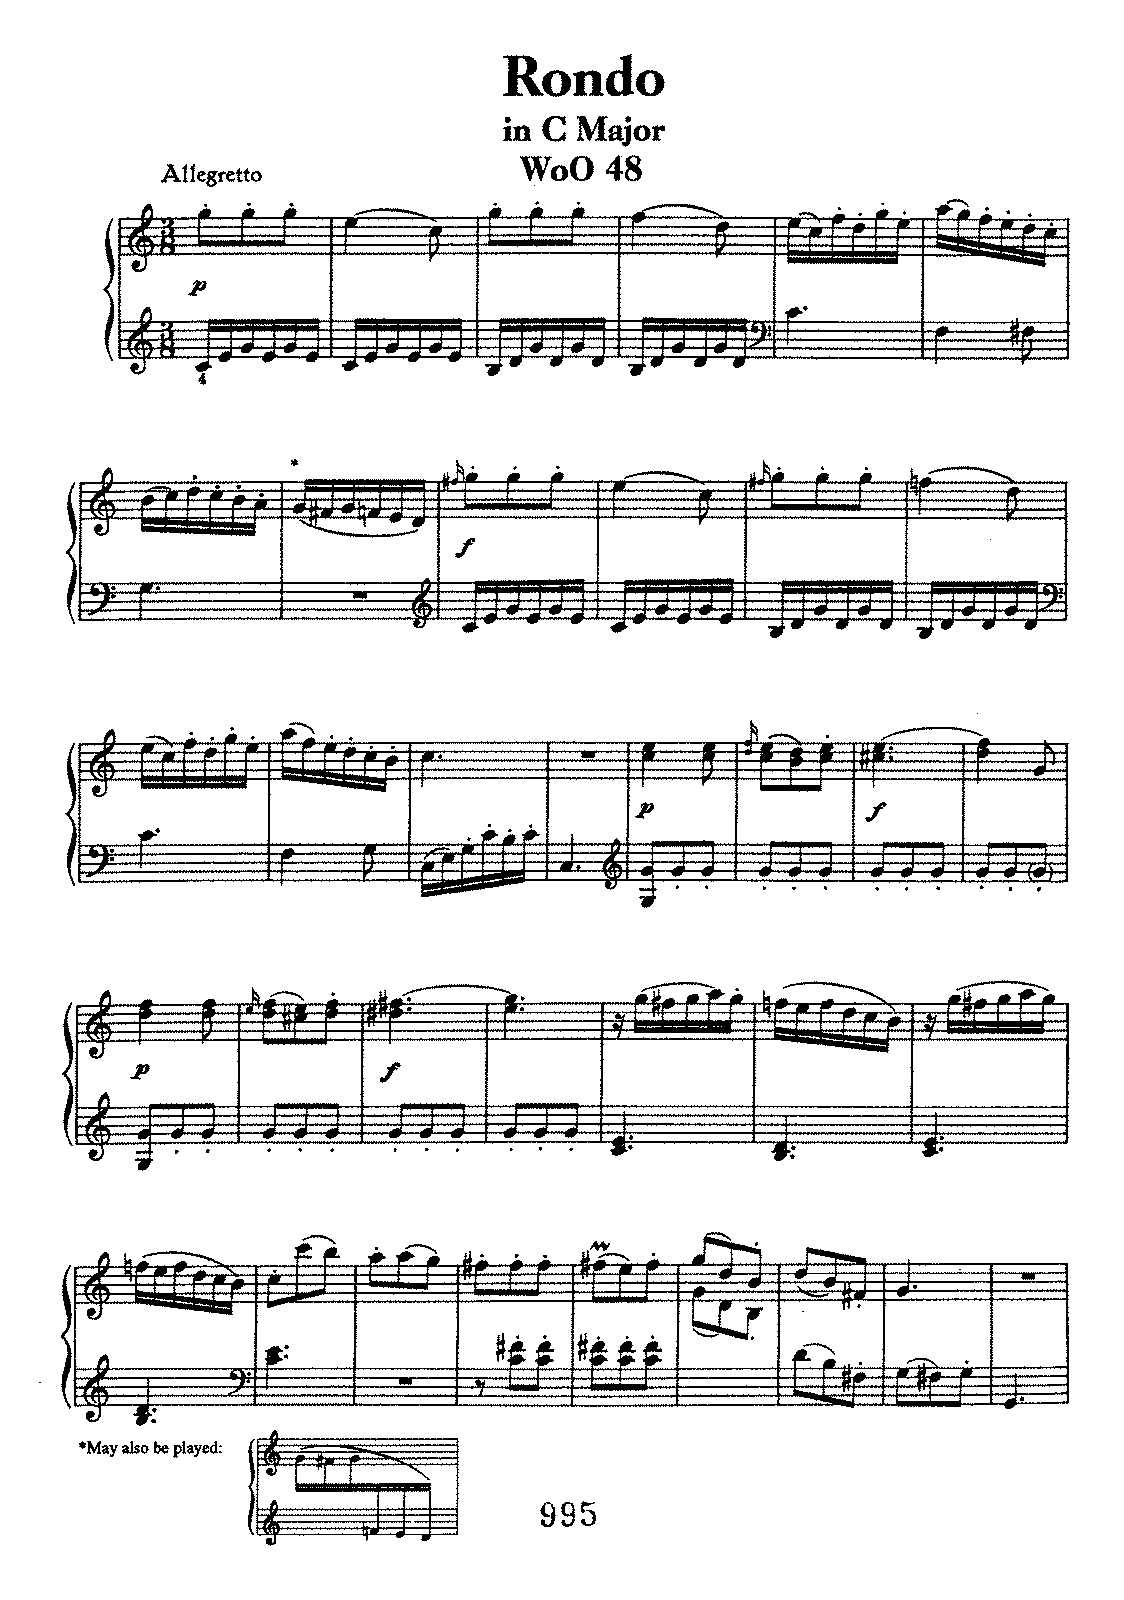 Beethoven woo48 Rondo in C.pdf